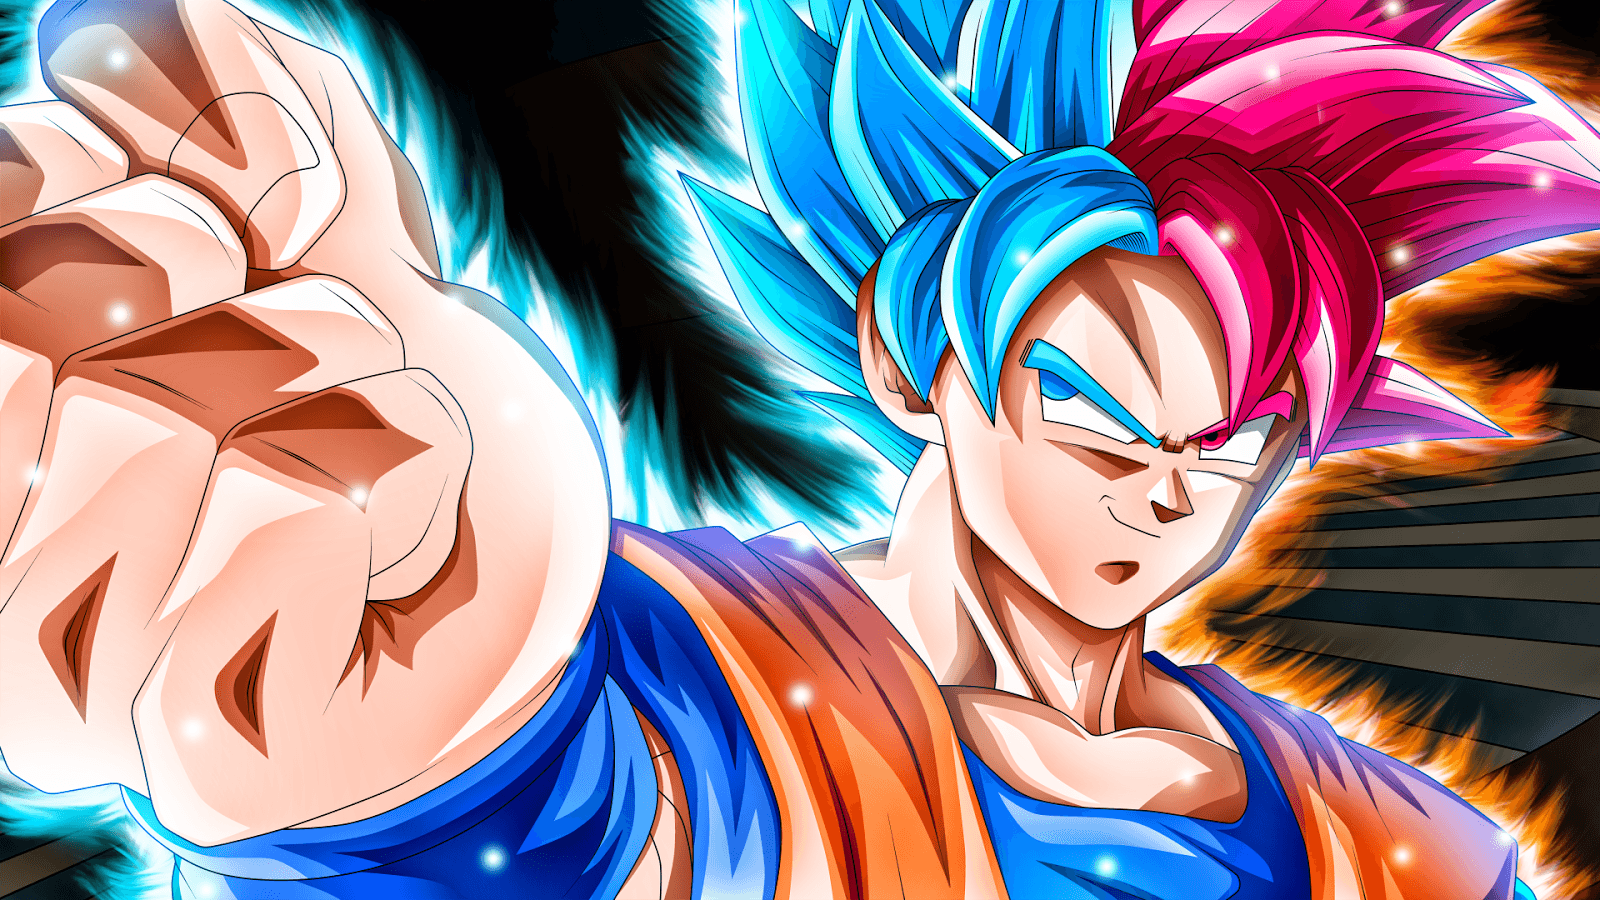 Goku Super Saiyan God Wallpapers Top Free Goku Super Saiyan God